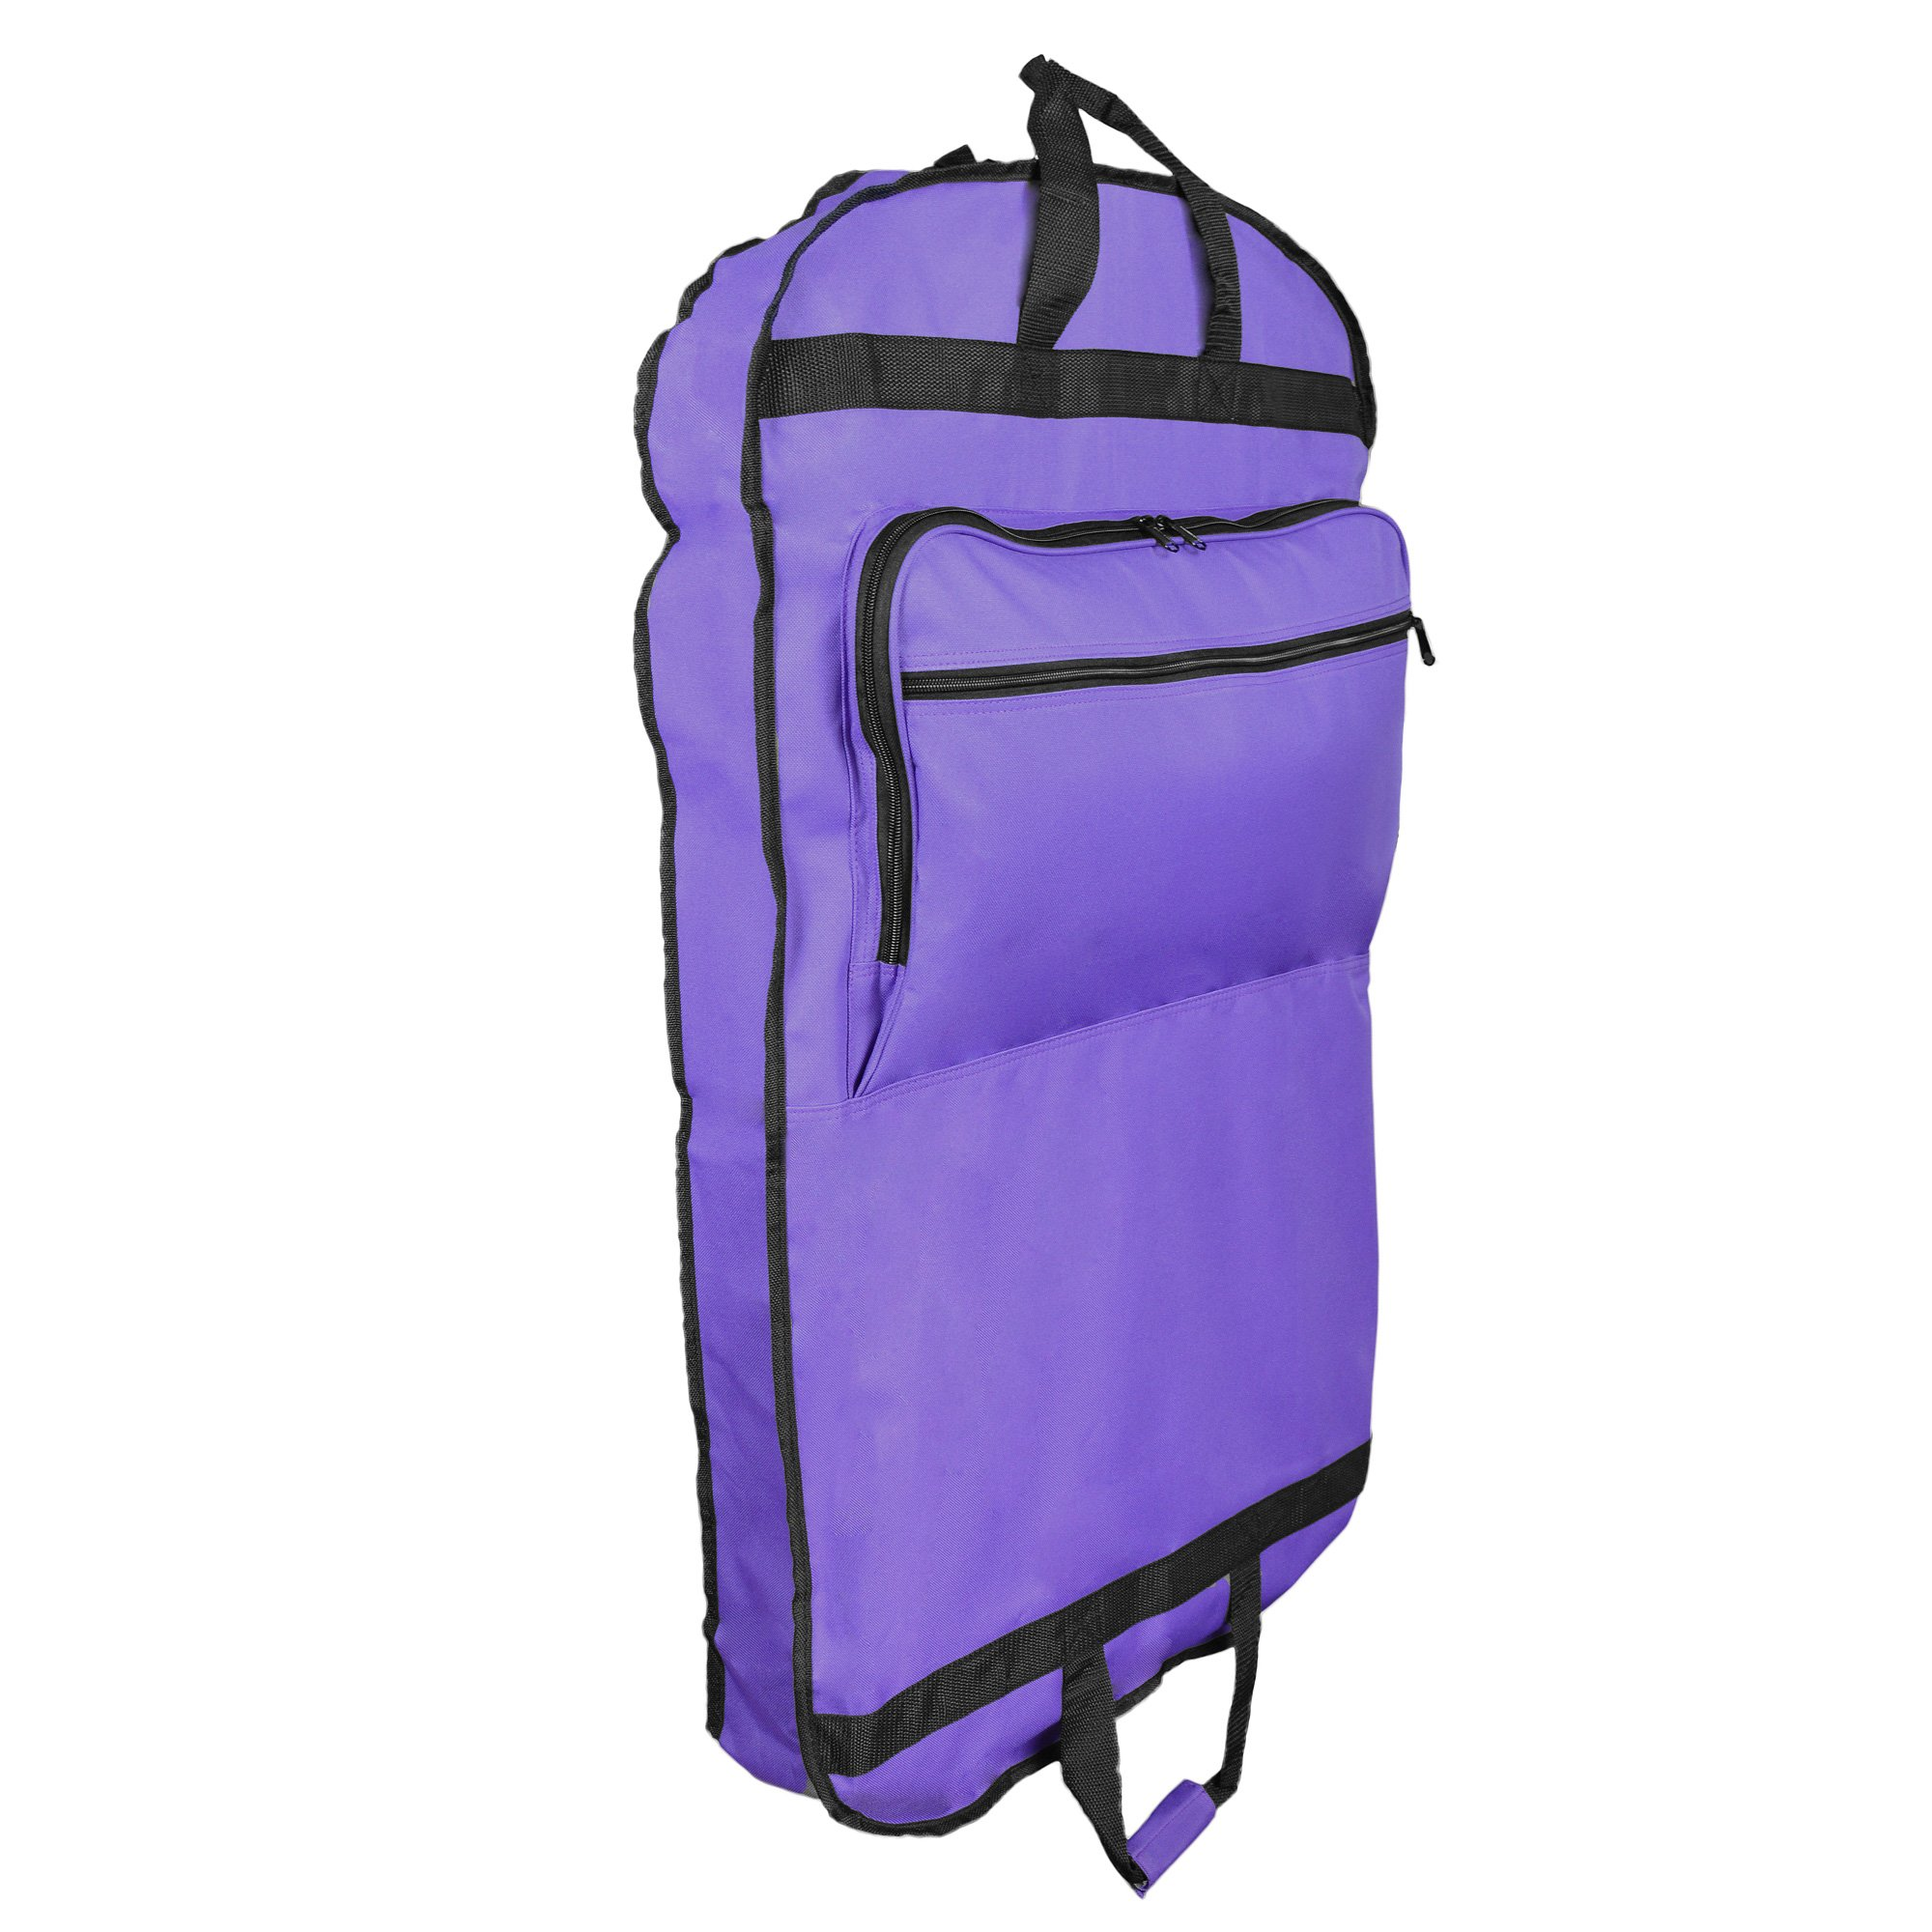 DALIX 39'' Garment Bag Cover Suits Dresses Clothing Foldable Shoe Pocket in Purple